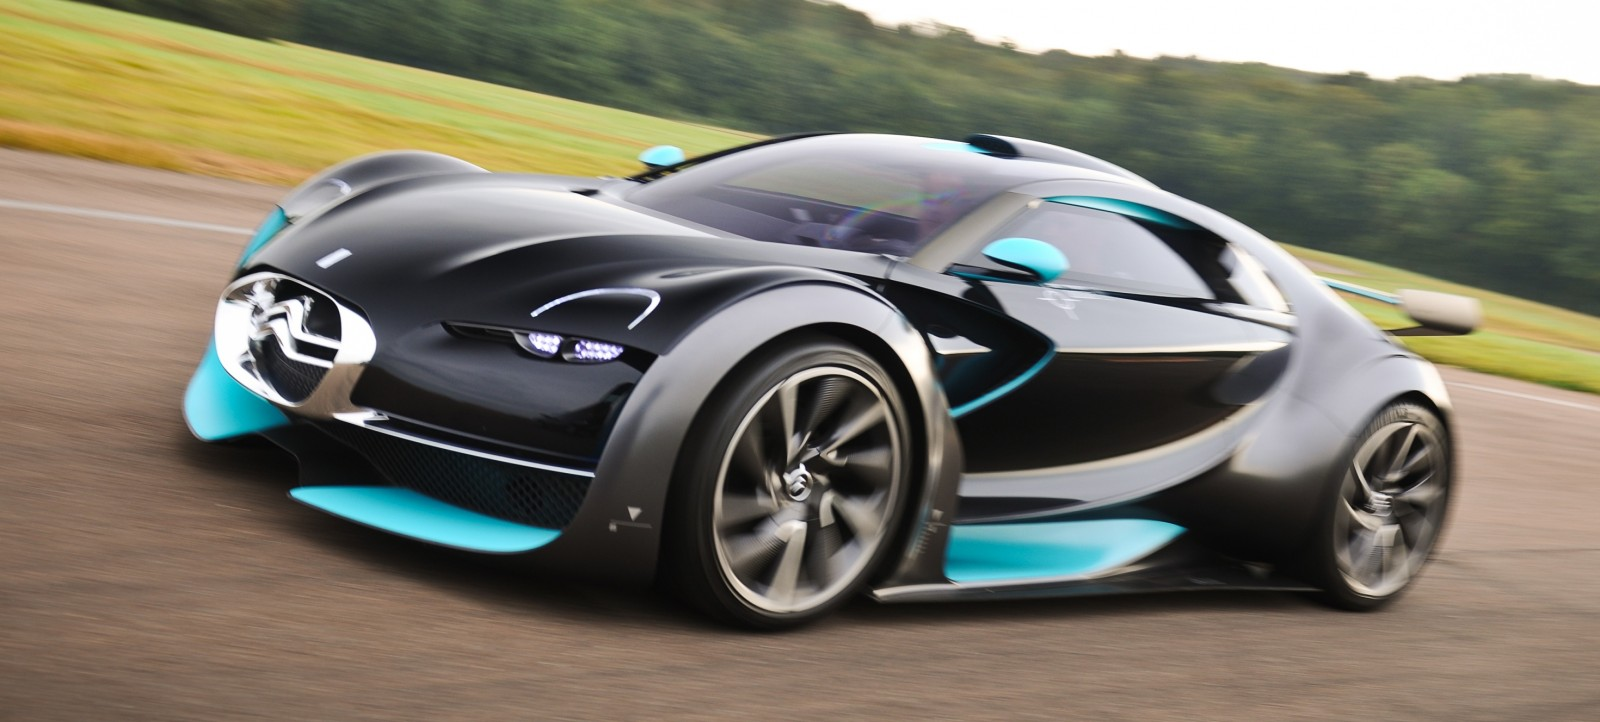 Concept Flashback - 2010 Citroen Survolt 99